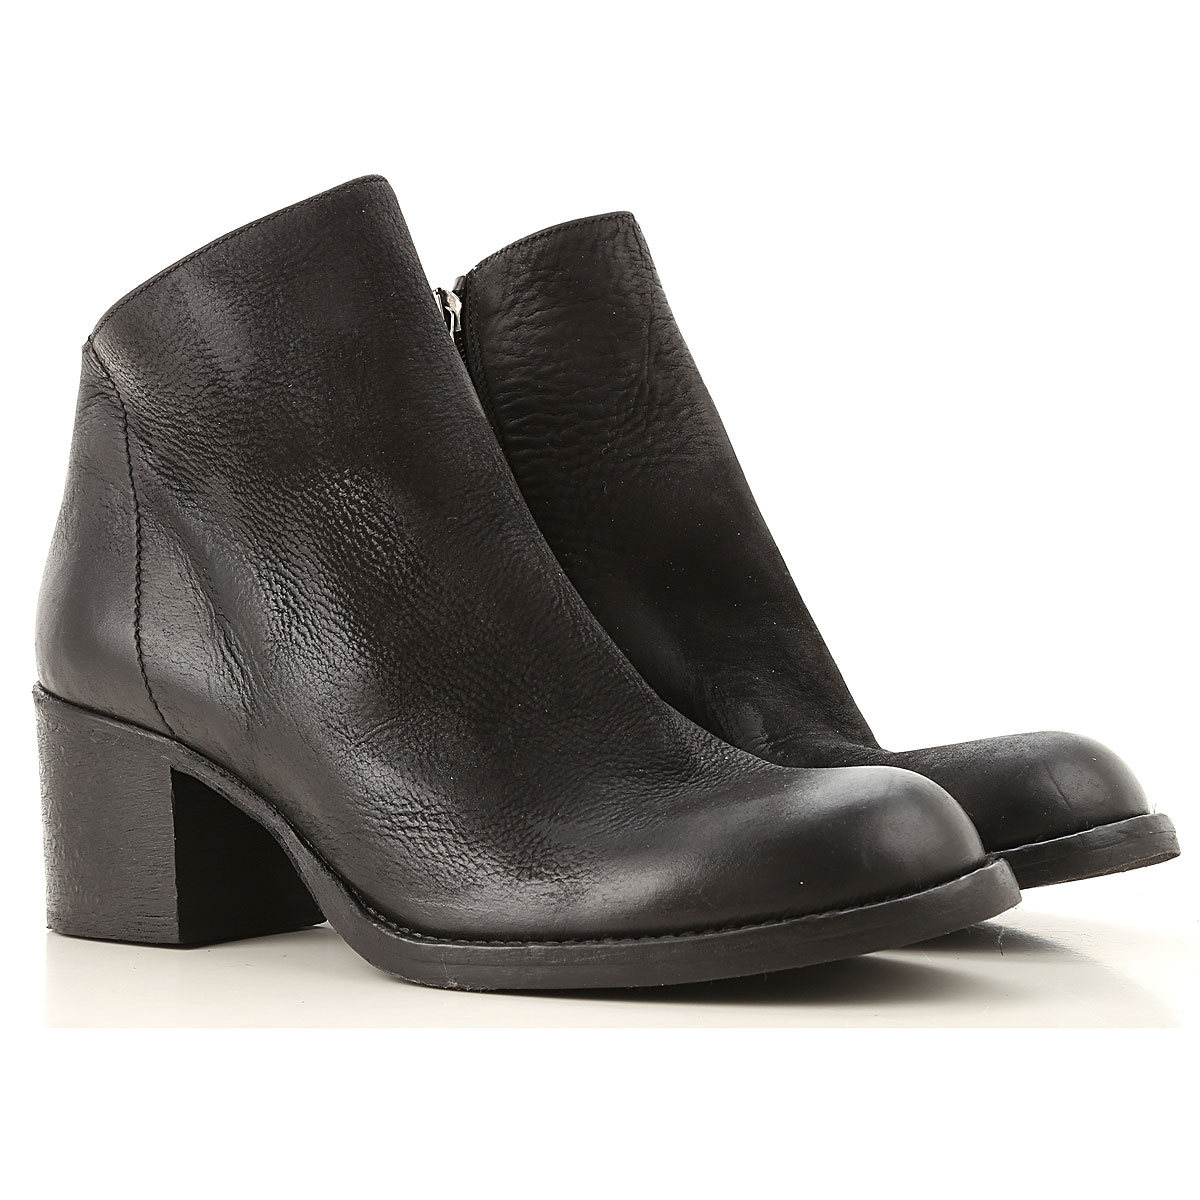 Strategia Boots for Women, Booties On Sale, Black, Leather, 2019, 7 8